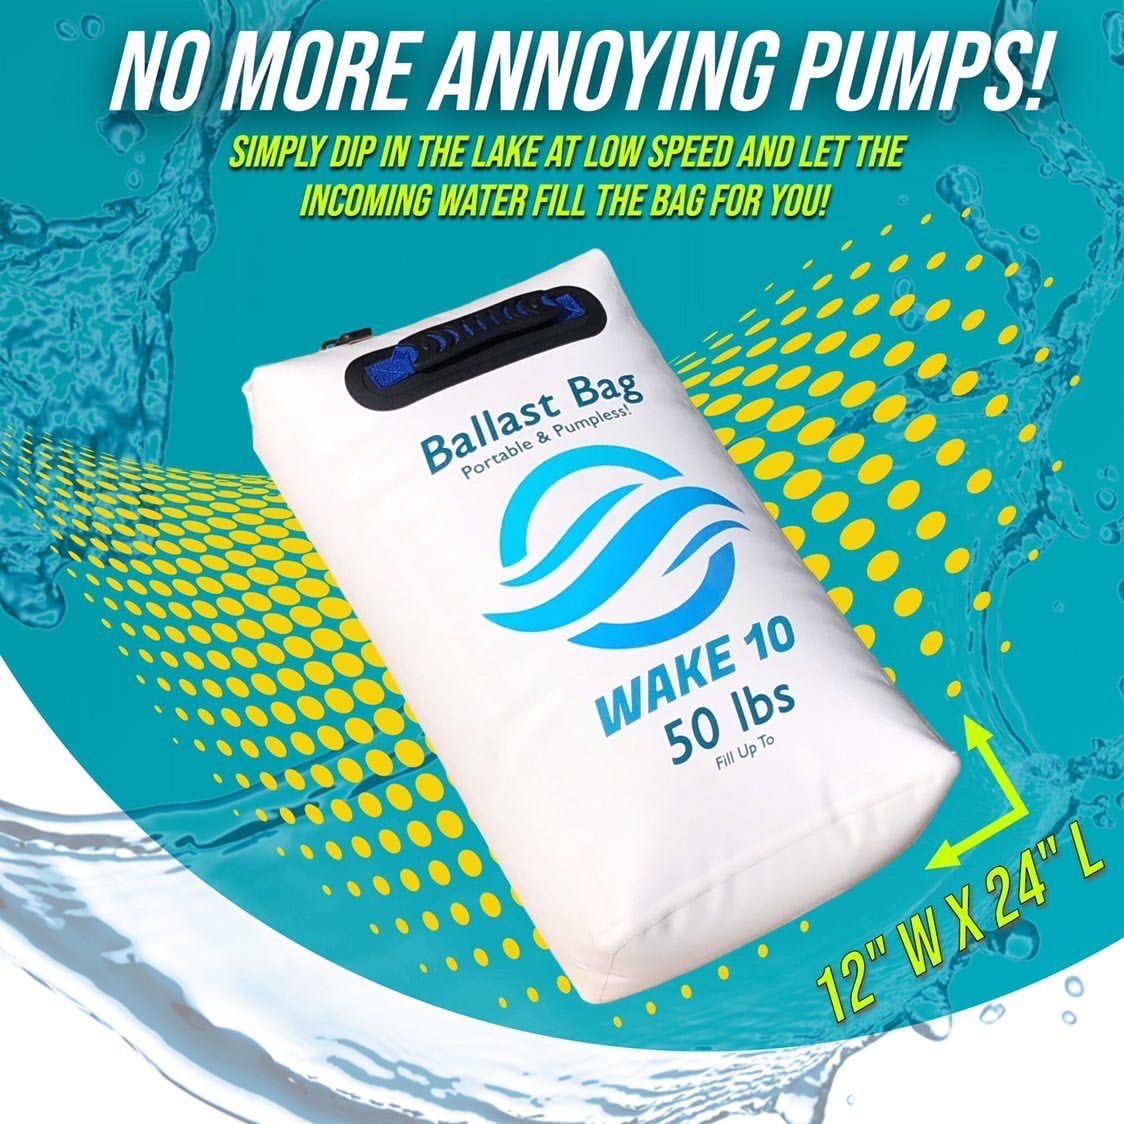 Ballast Bag Portable & Pumpless! PRE ORDER NOW! - WakeSurfing Life